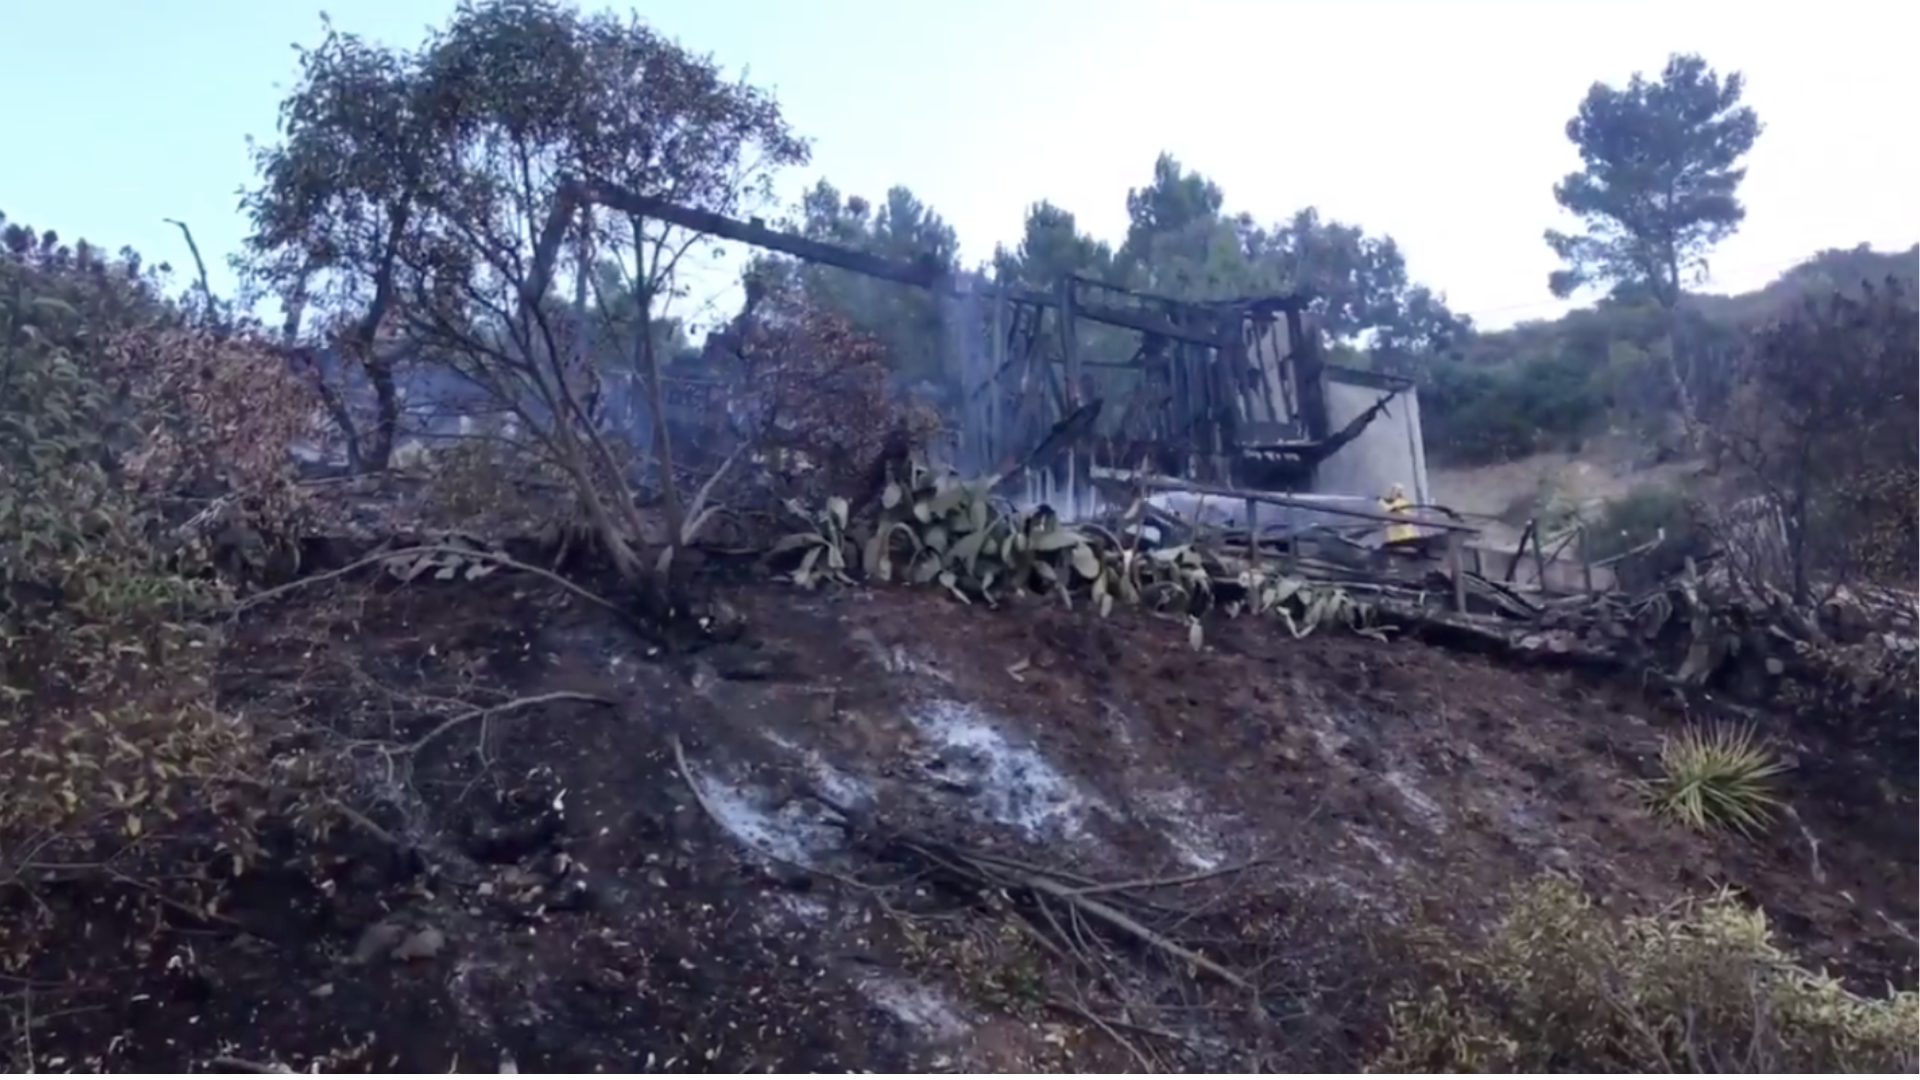 A screenshot from a video tweeted by the L.A. County Fire Department shows the aftermath of a house fire that spread to 4 acres of brush in Malibu on Jan. 17, 2021.